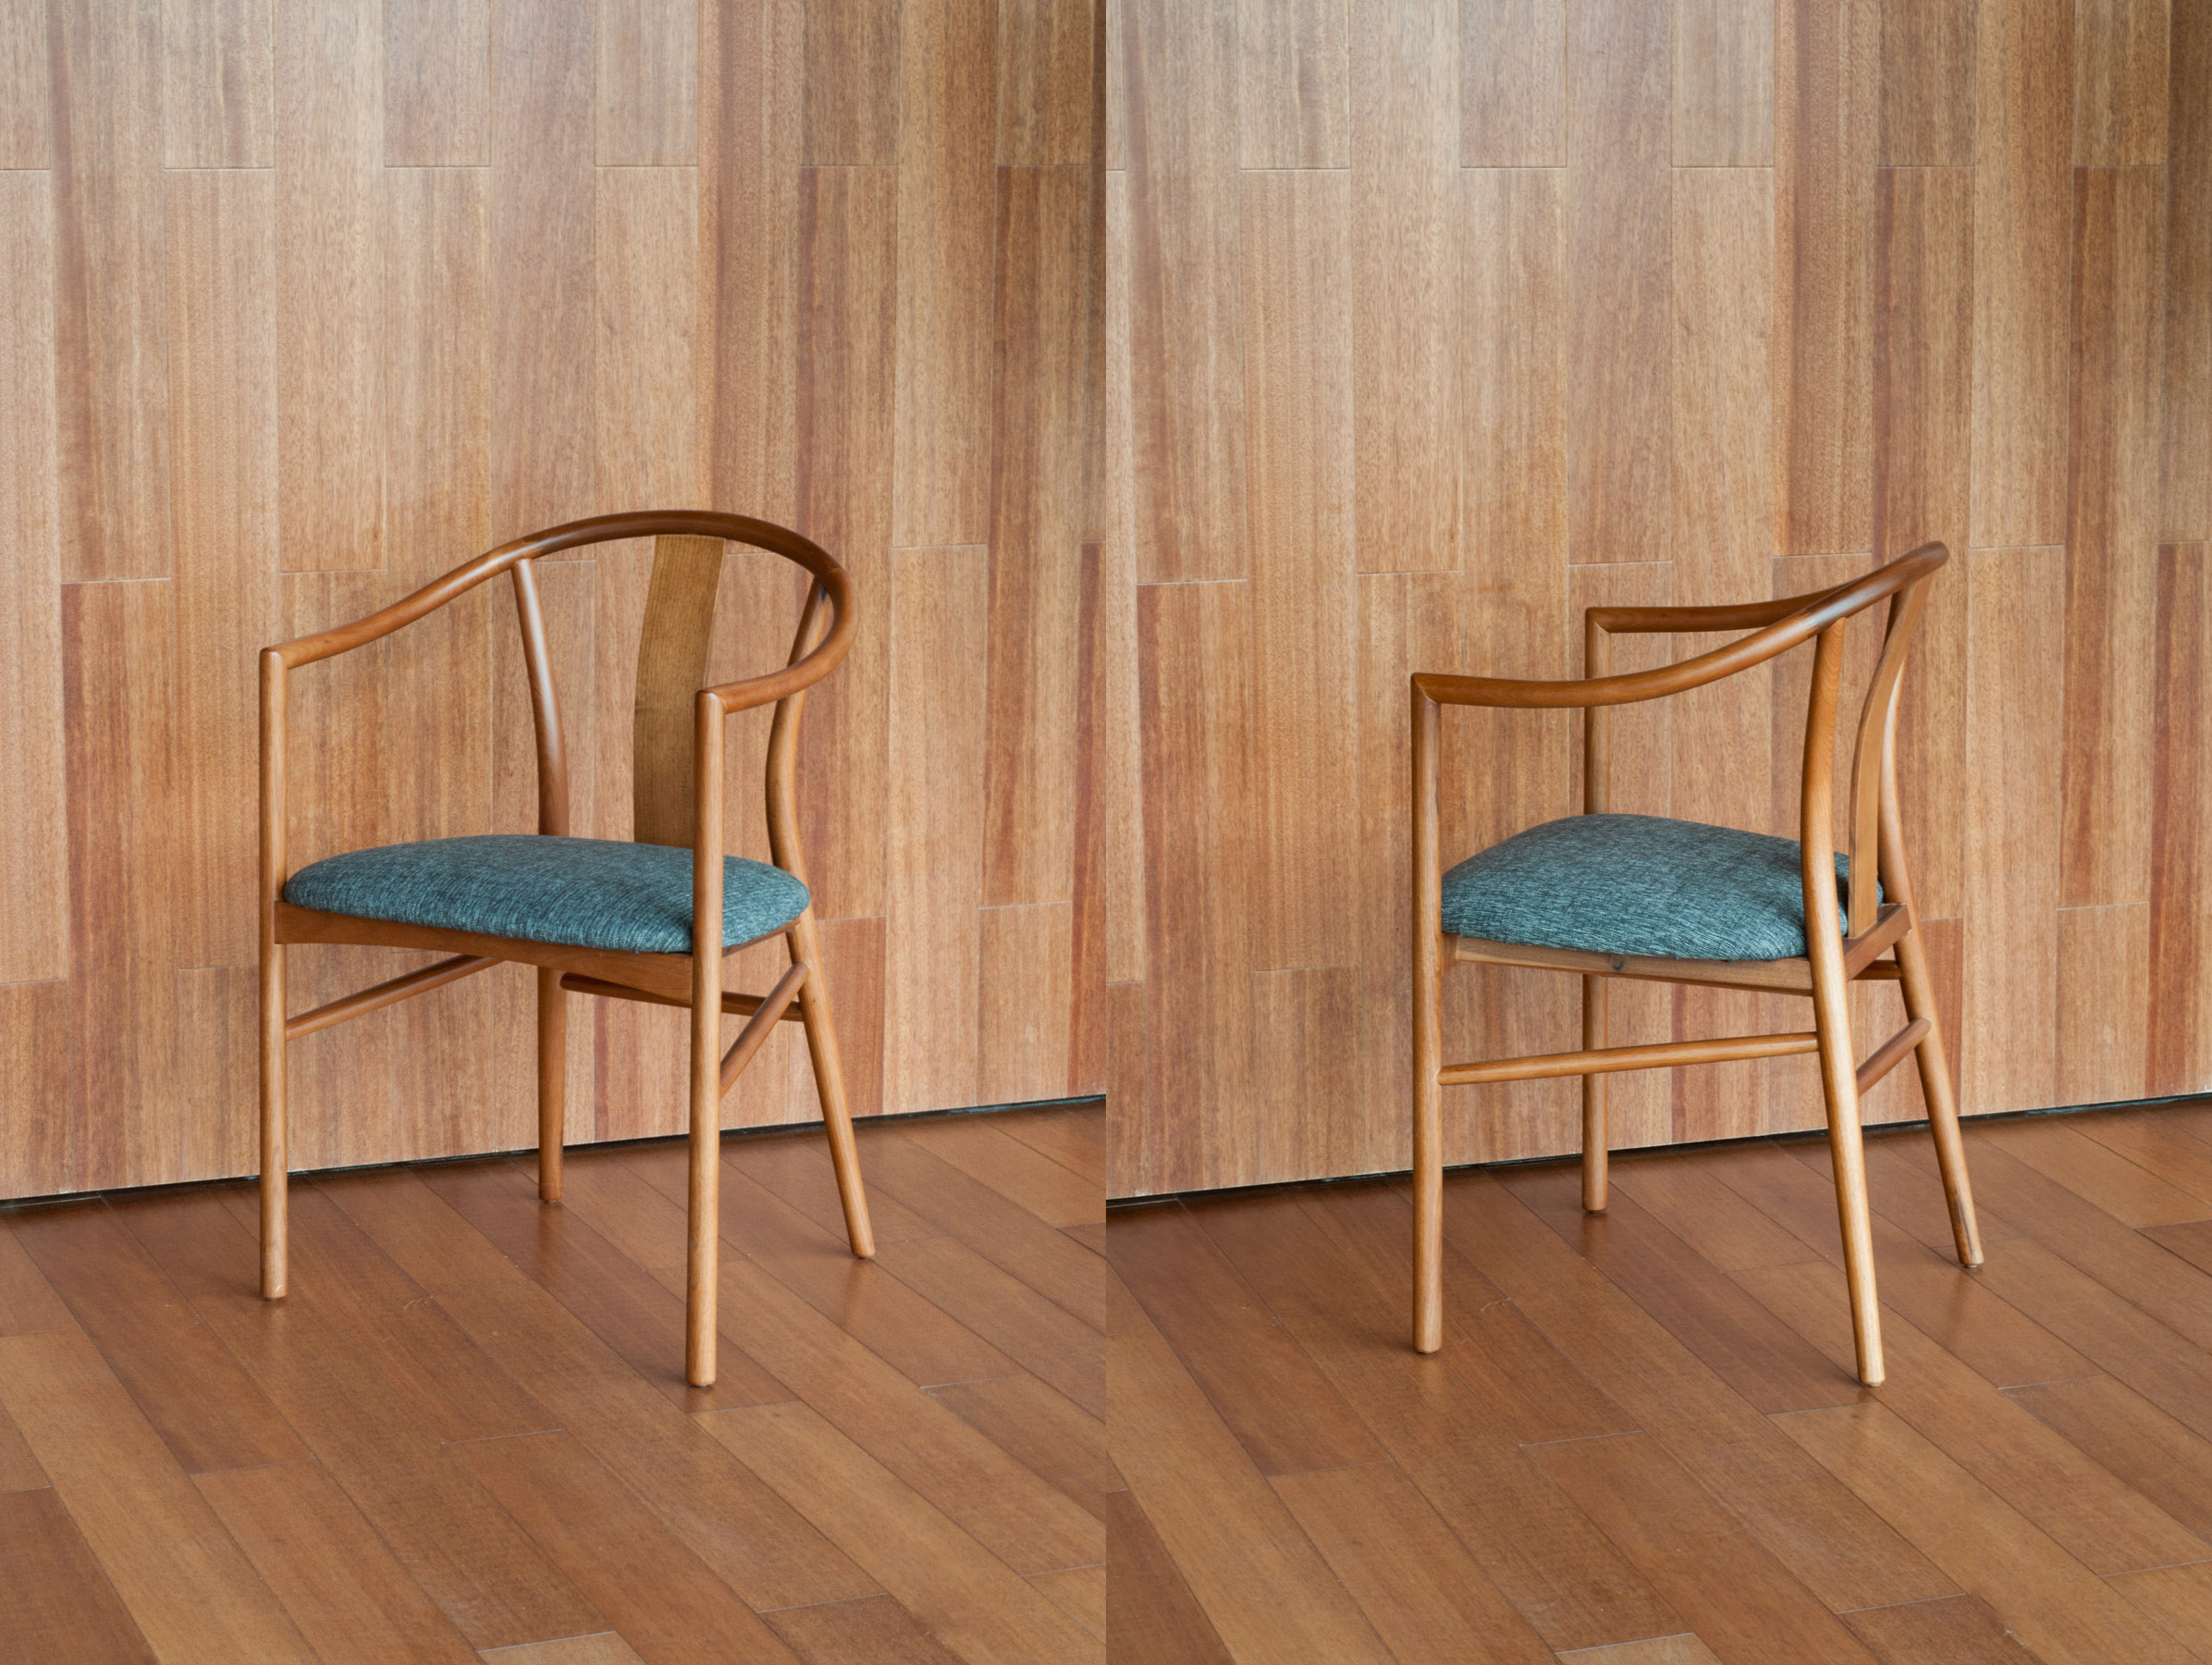 The chairs were designed for the project with the intention of merging a Chinese traditions and language with Nordic lightness and functionality.